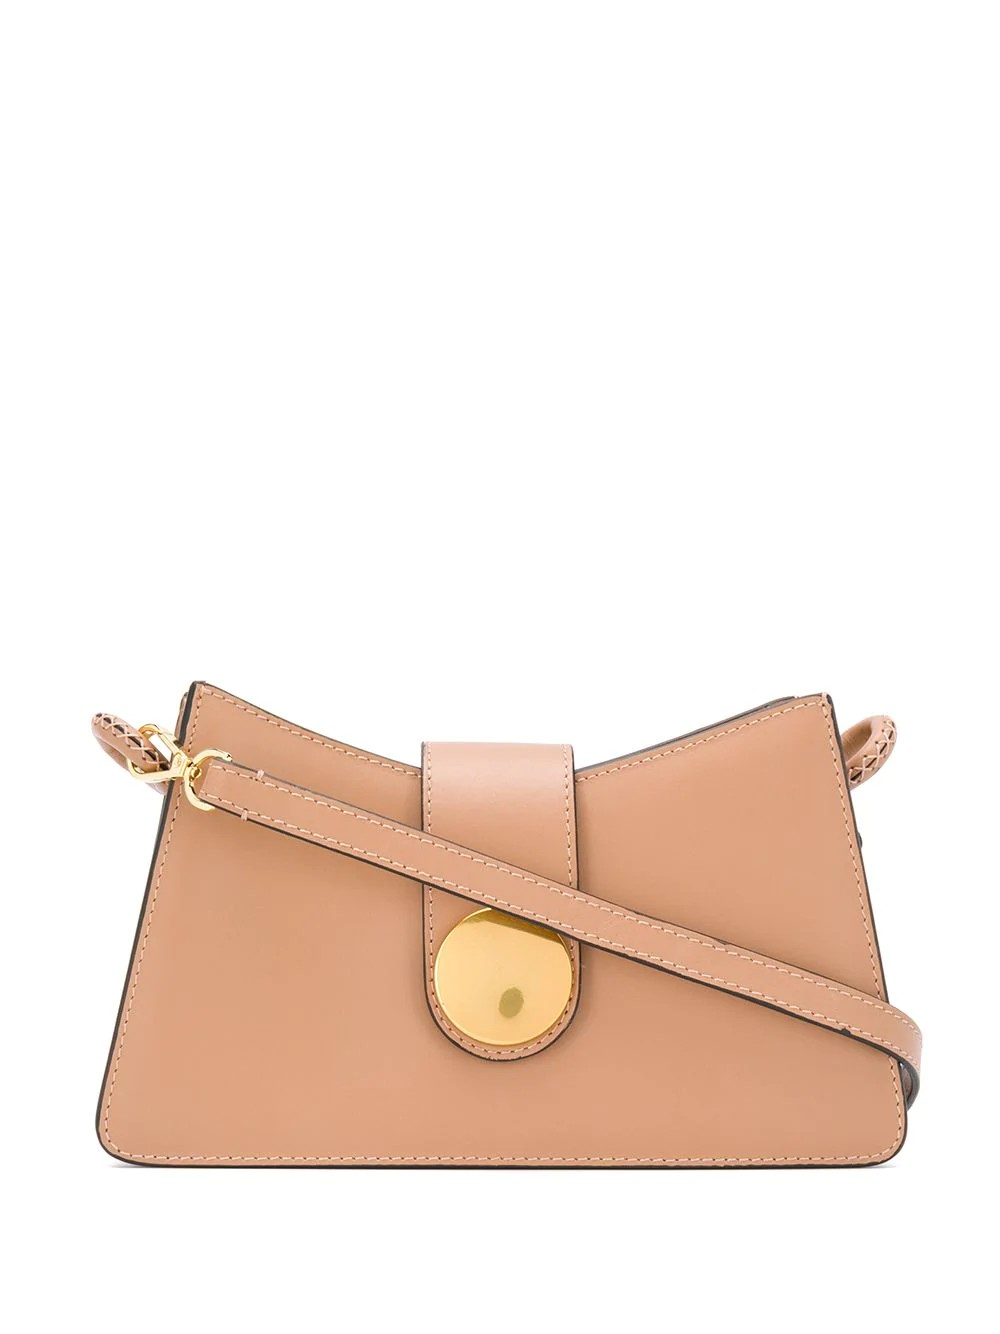 BAGUETTE LEATHER CAMEL